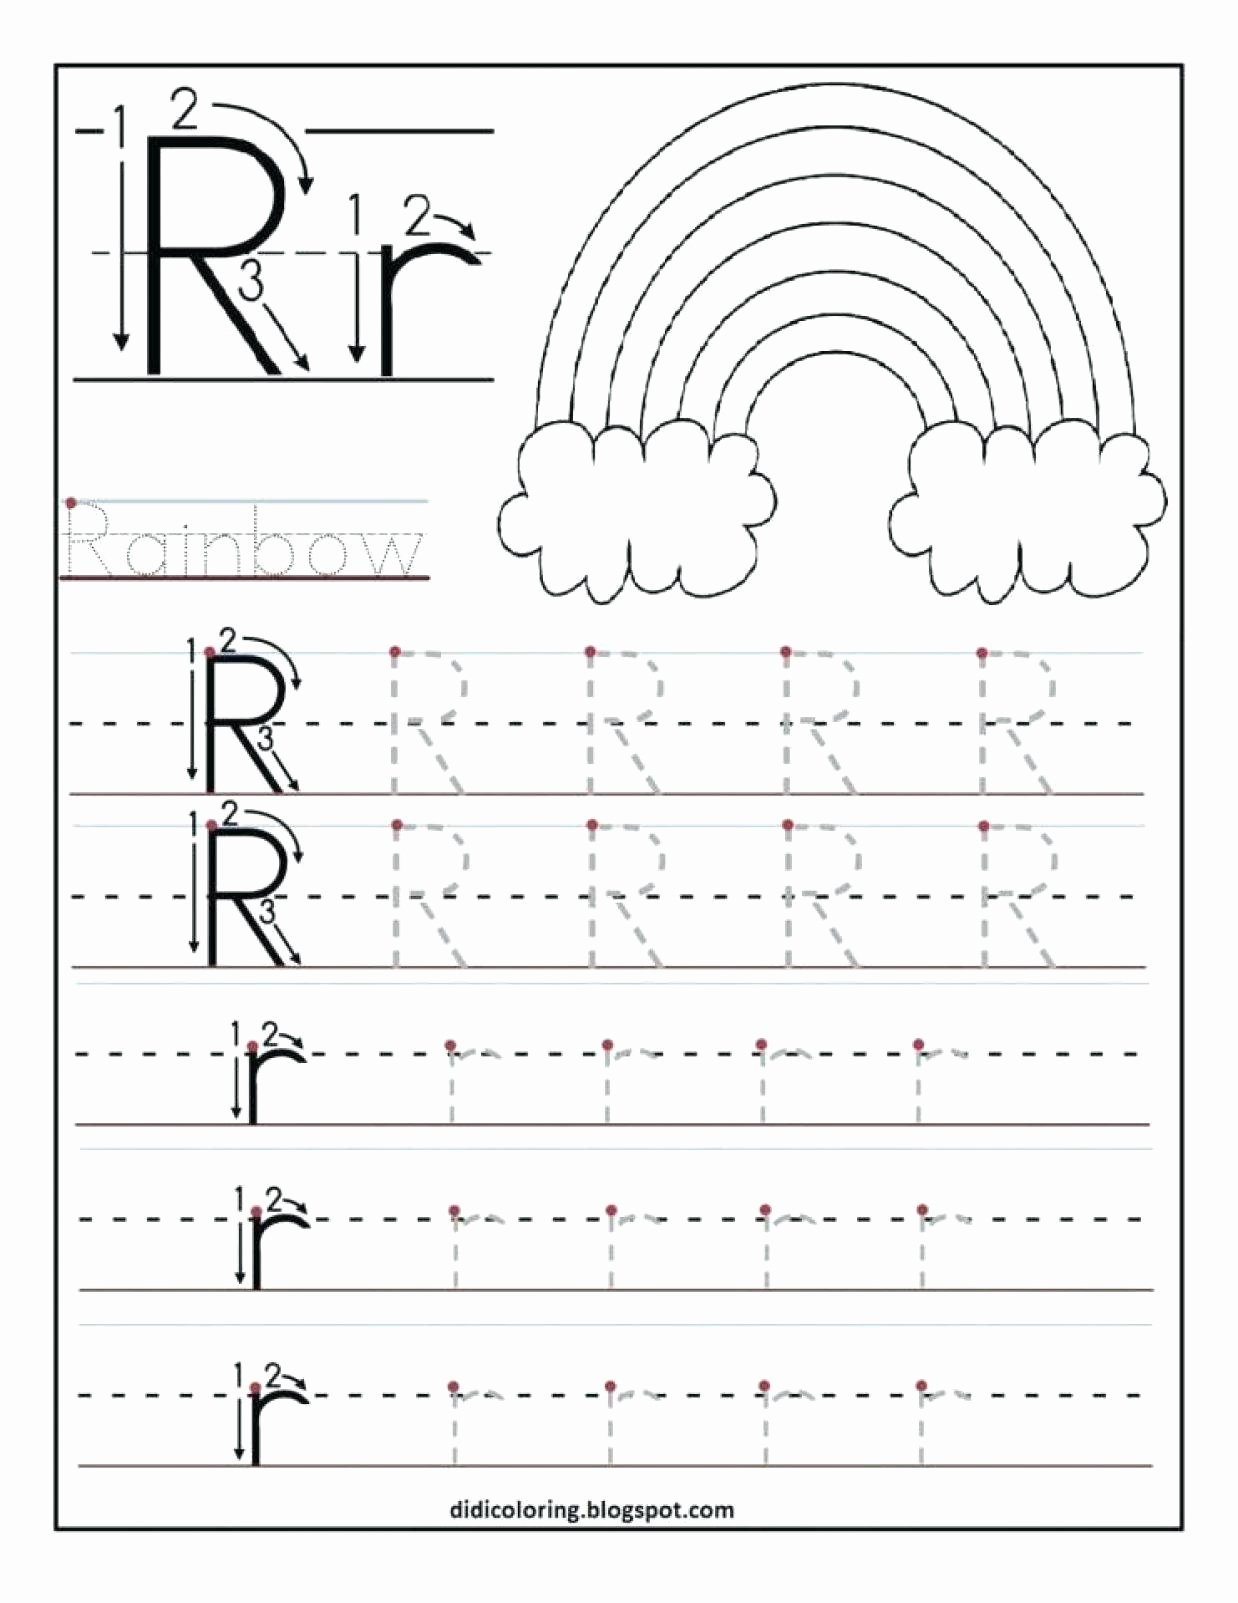 Few and Many Worksheets for Preschoolers Unique Letter forming Worksheets Printable and Activities Alphabet